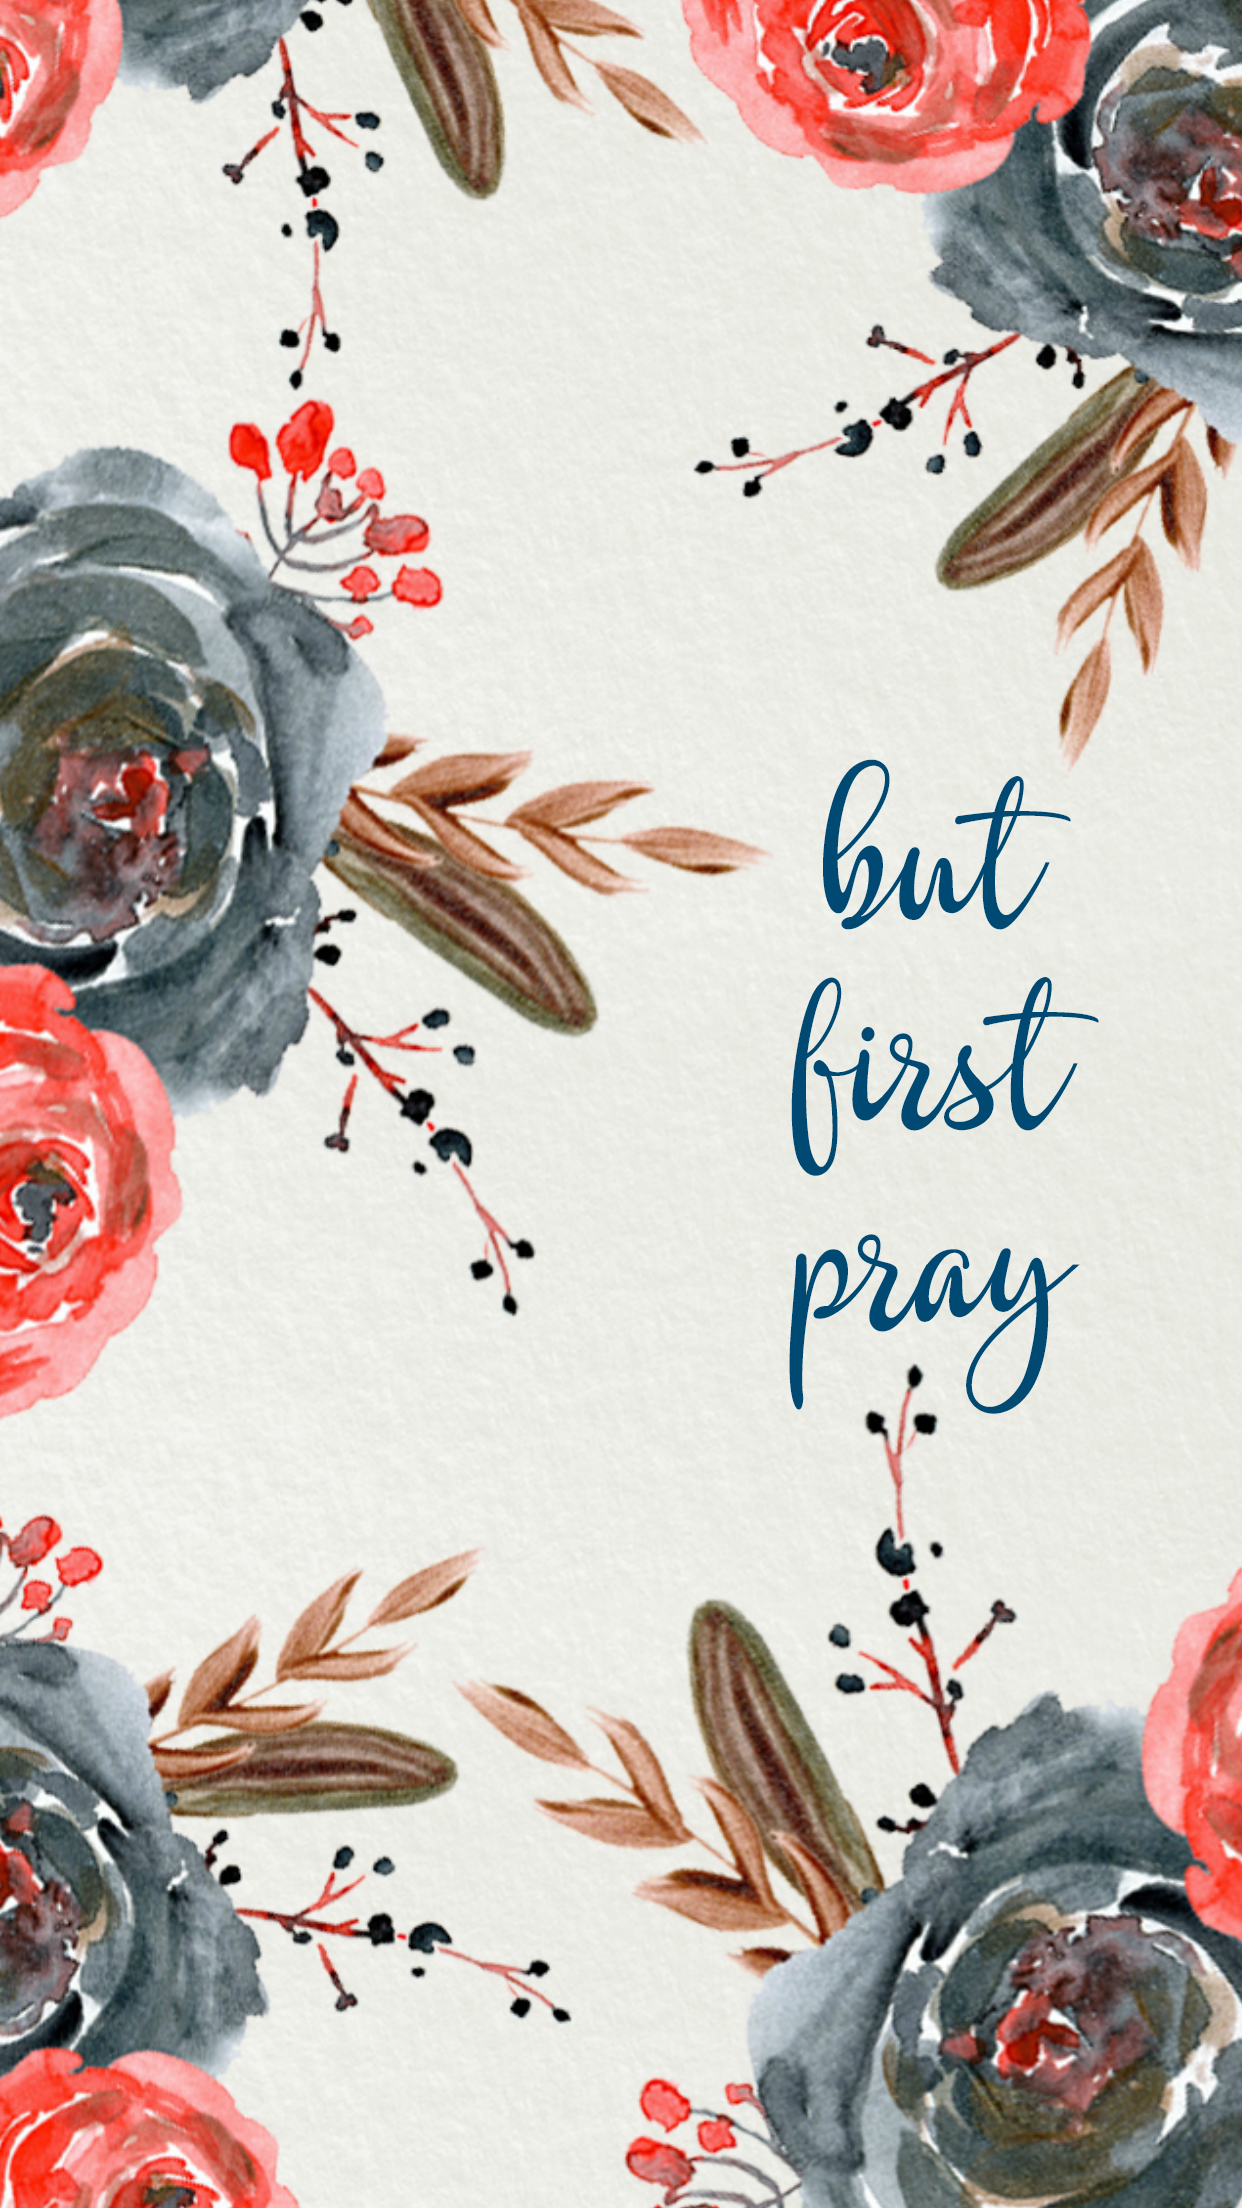 But first pray iphone wallpaper To live is Christ